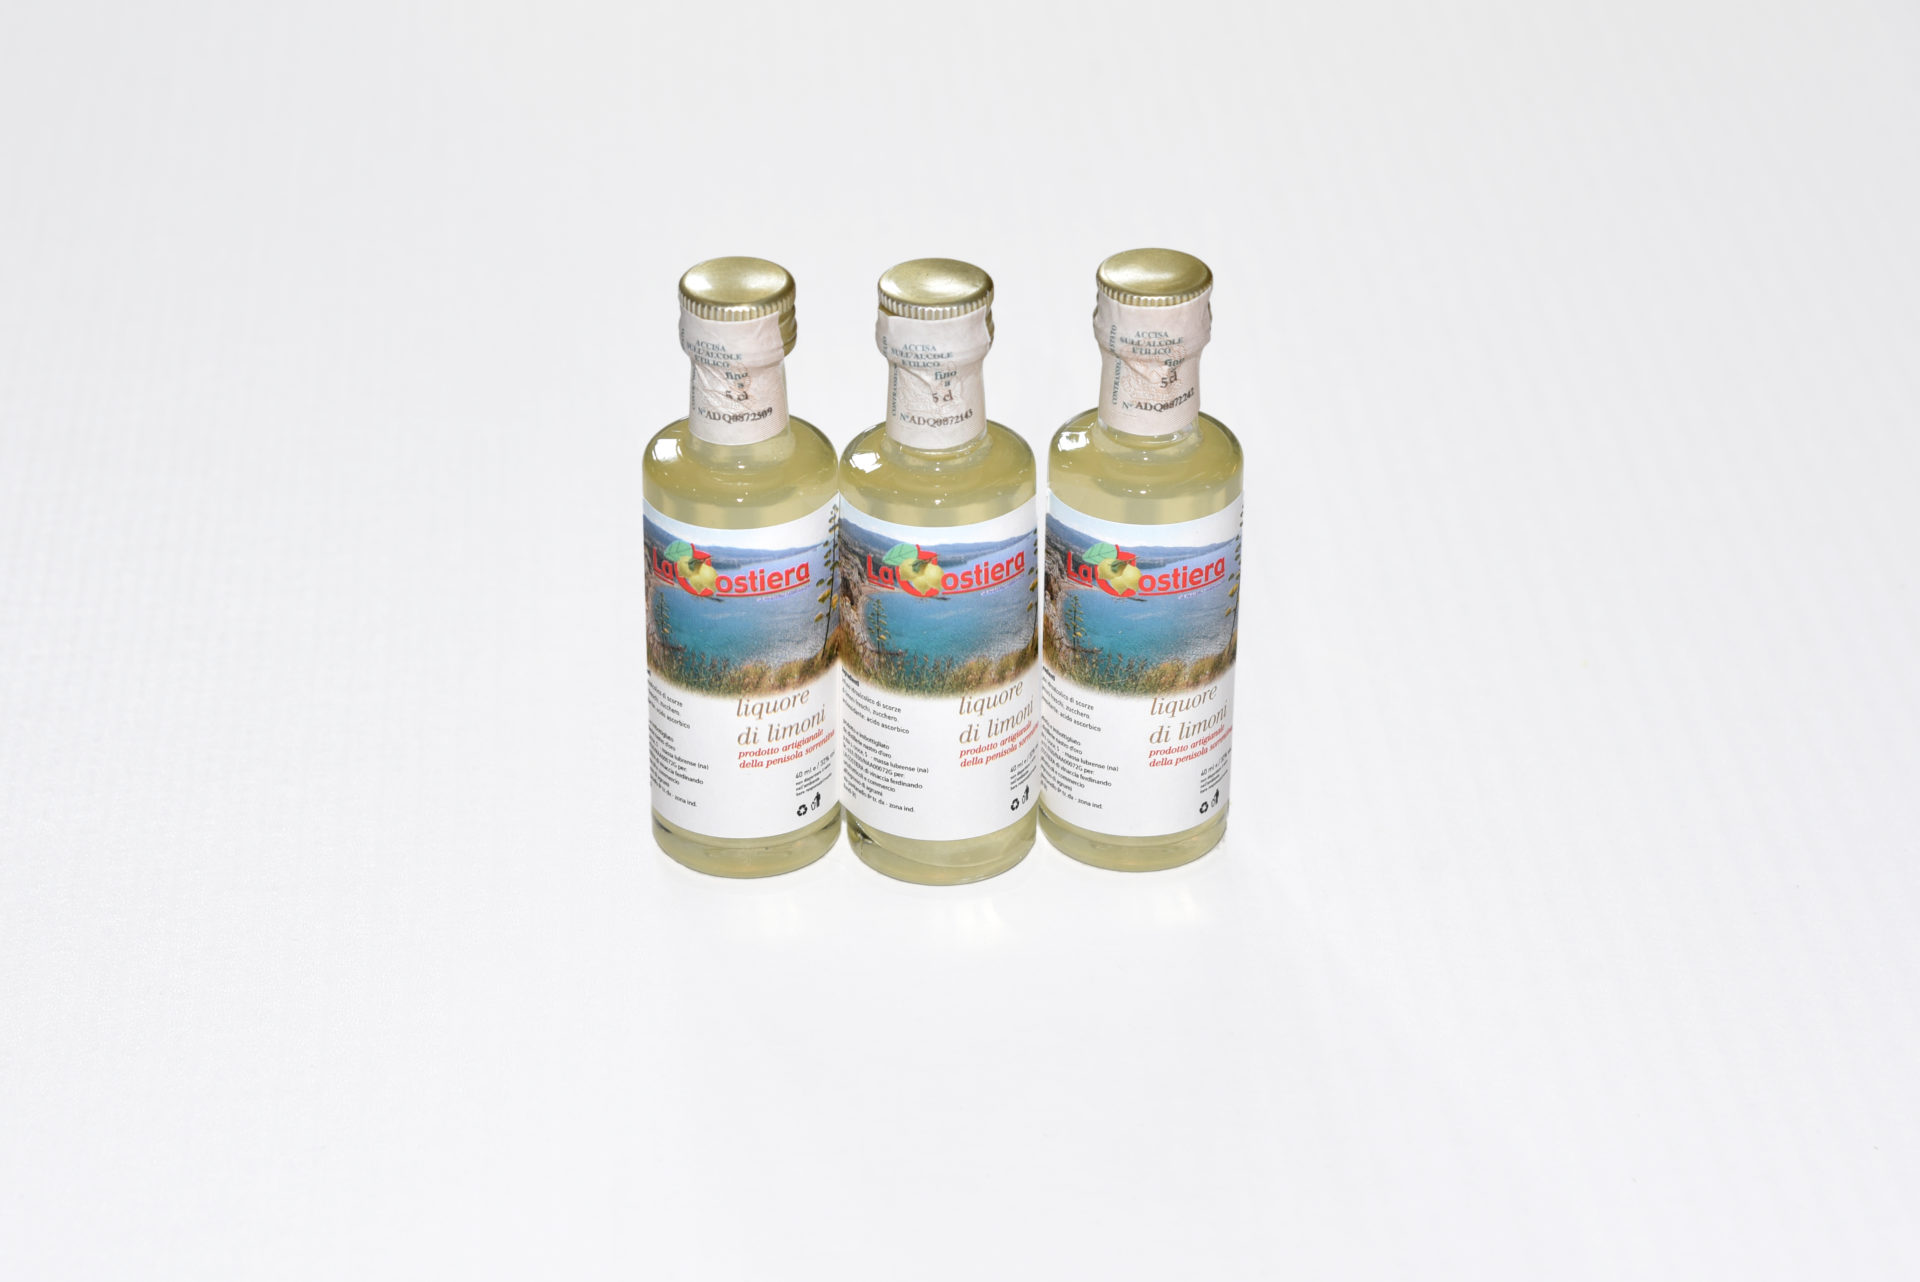 Lemon Liqueur (Limoncello) in 0.4L bottles